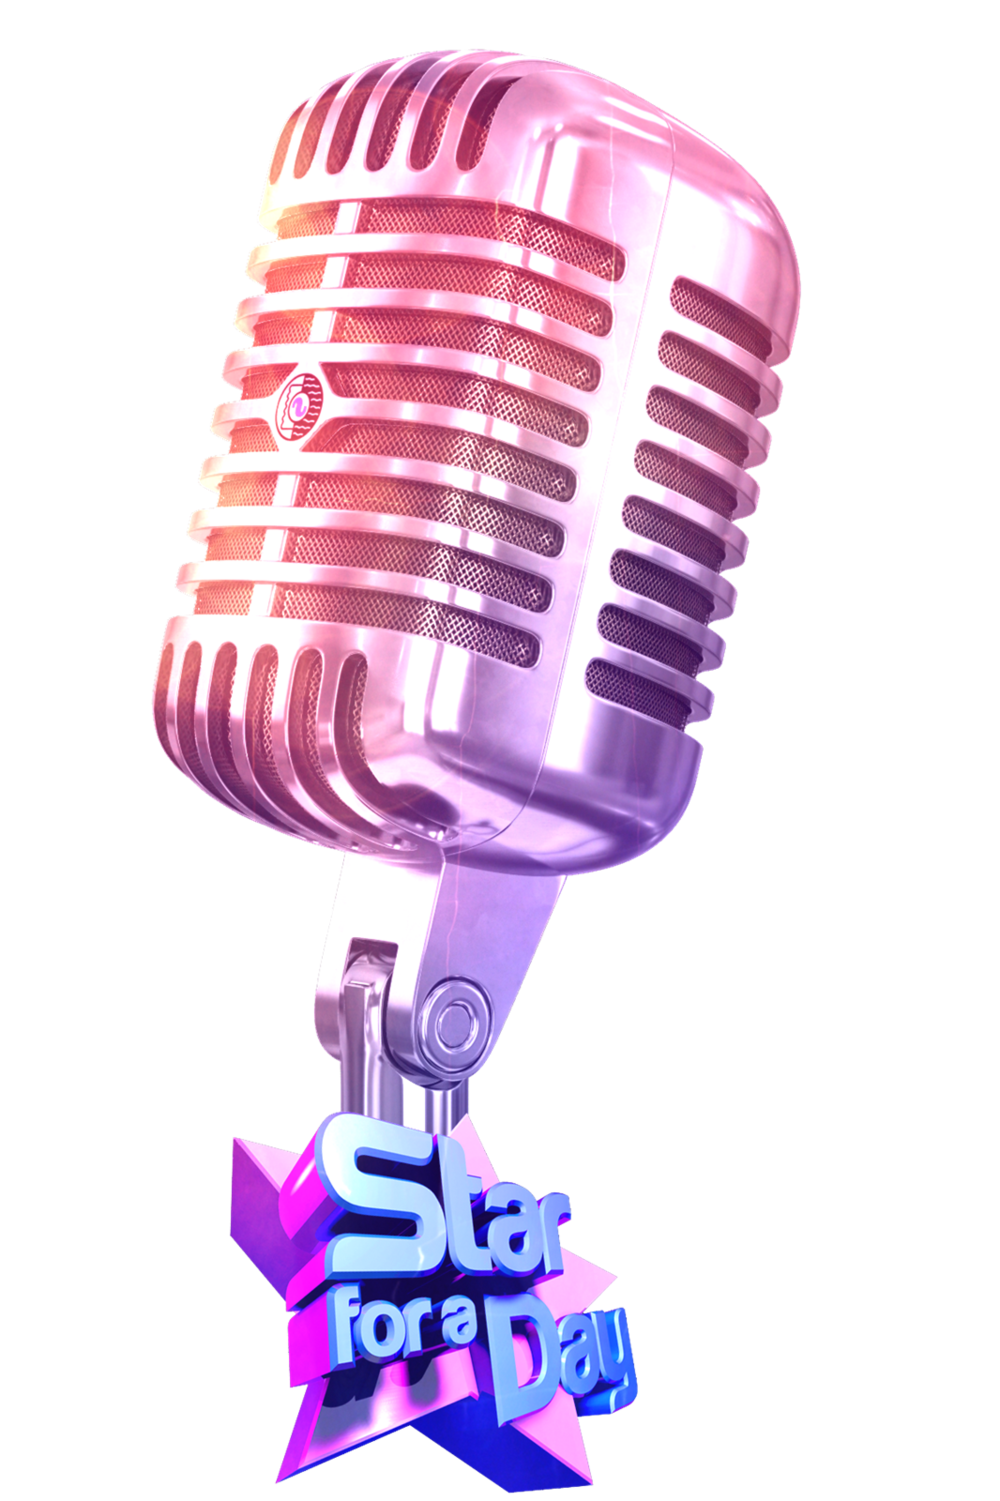 Recording Studio Workstation furthermore 40 Awesome Music Inspired Collection Of Logo Designs besides Carrmichael Logo Design also Mic further Faqs. on recording studio logo ideas